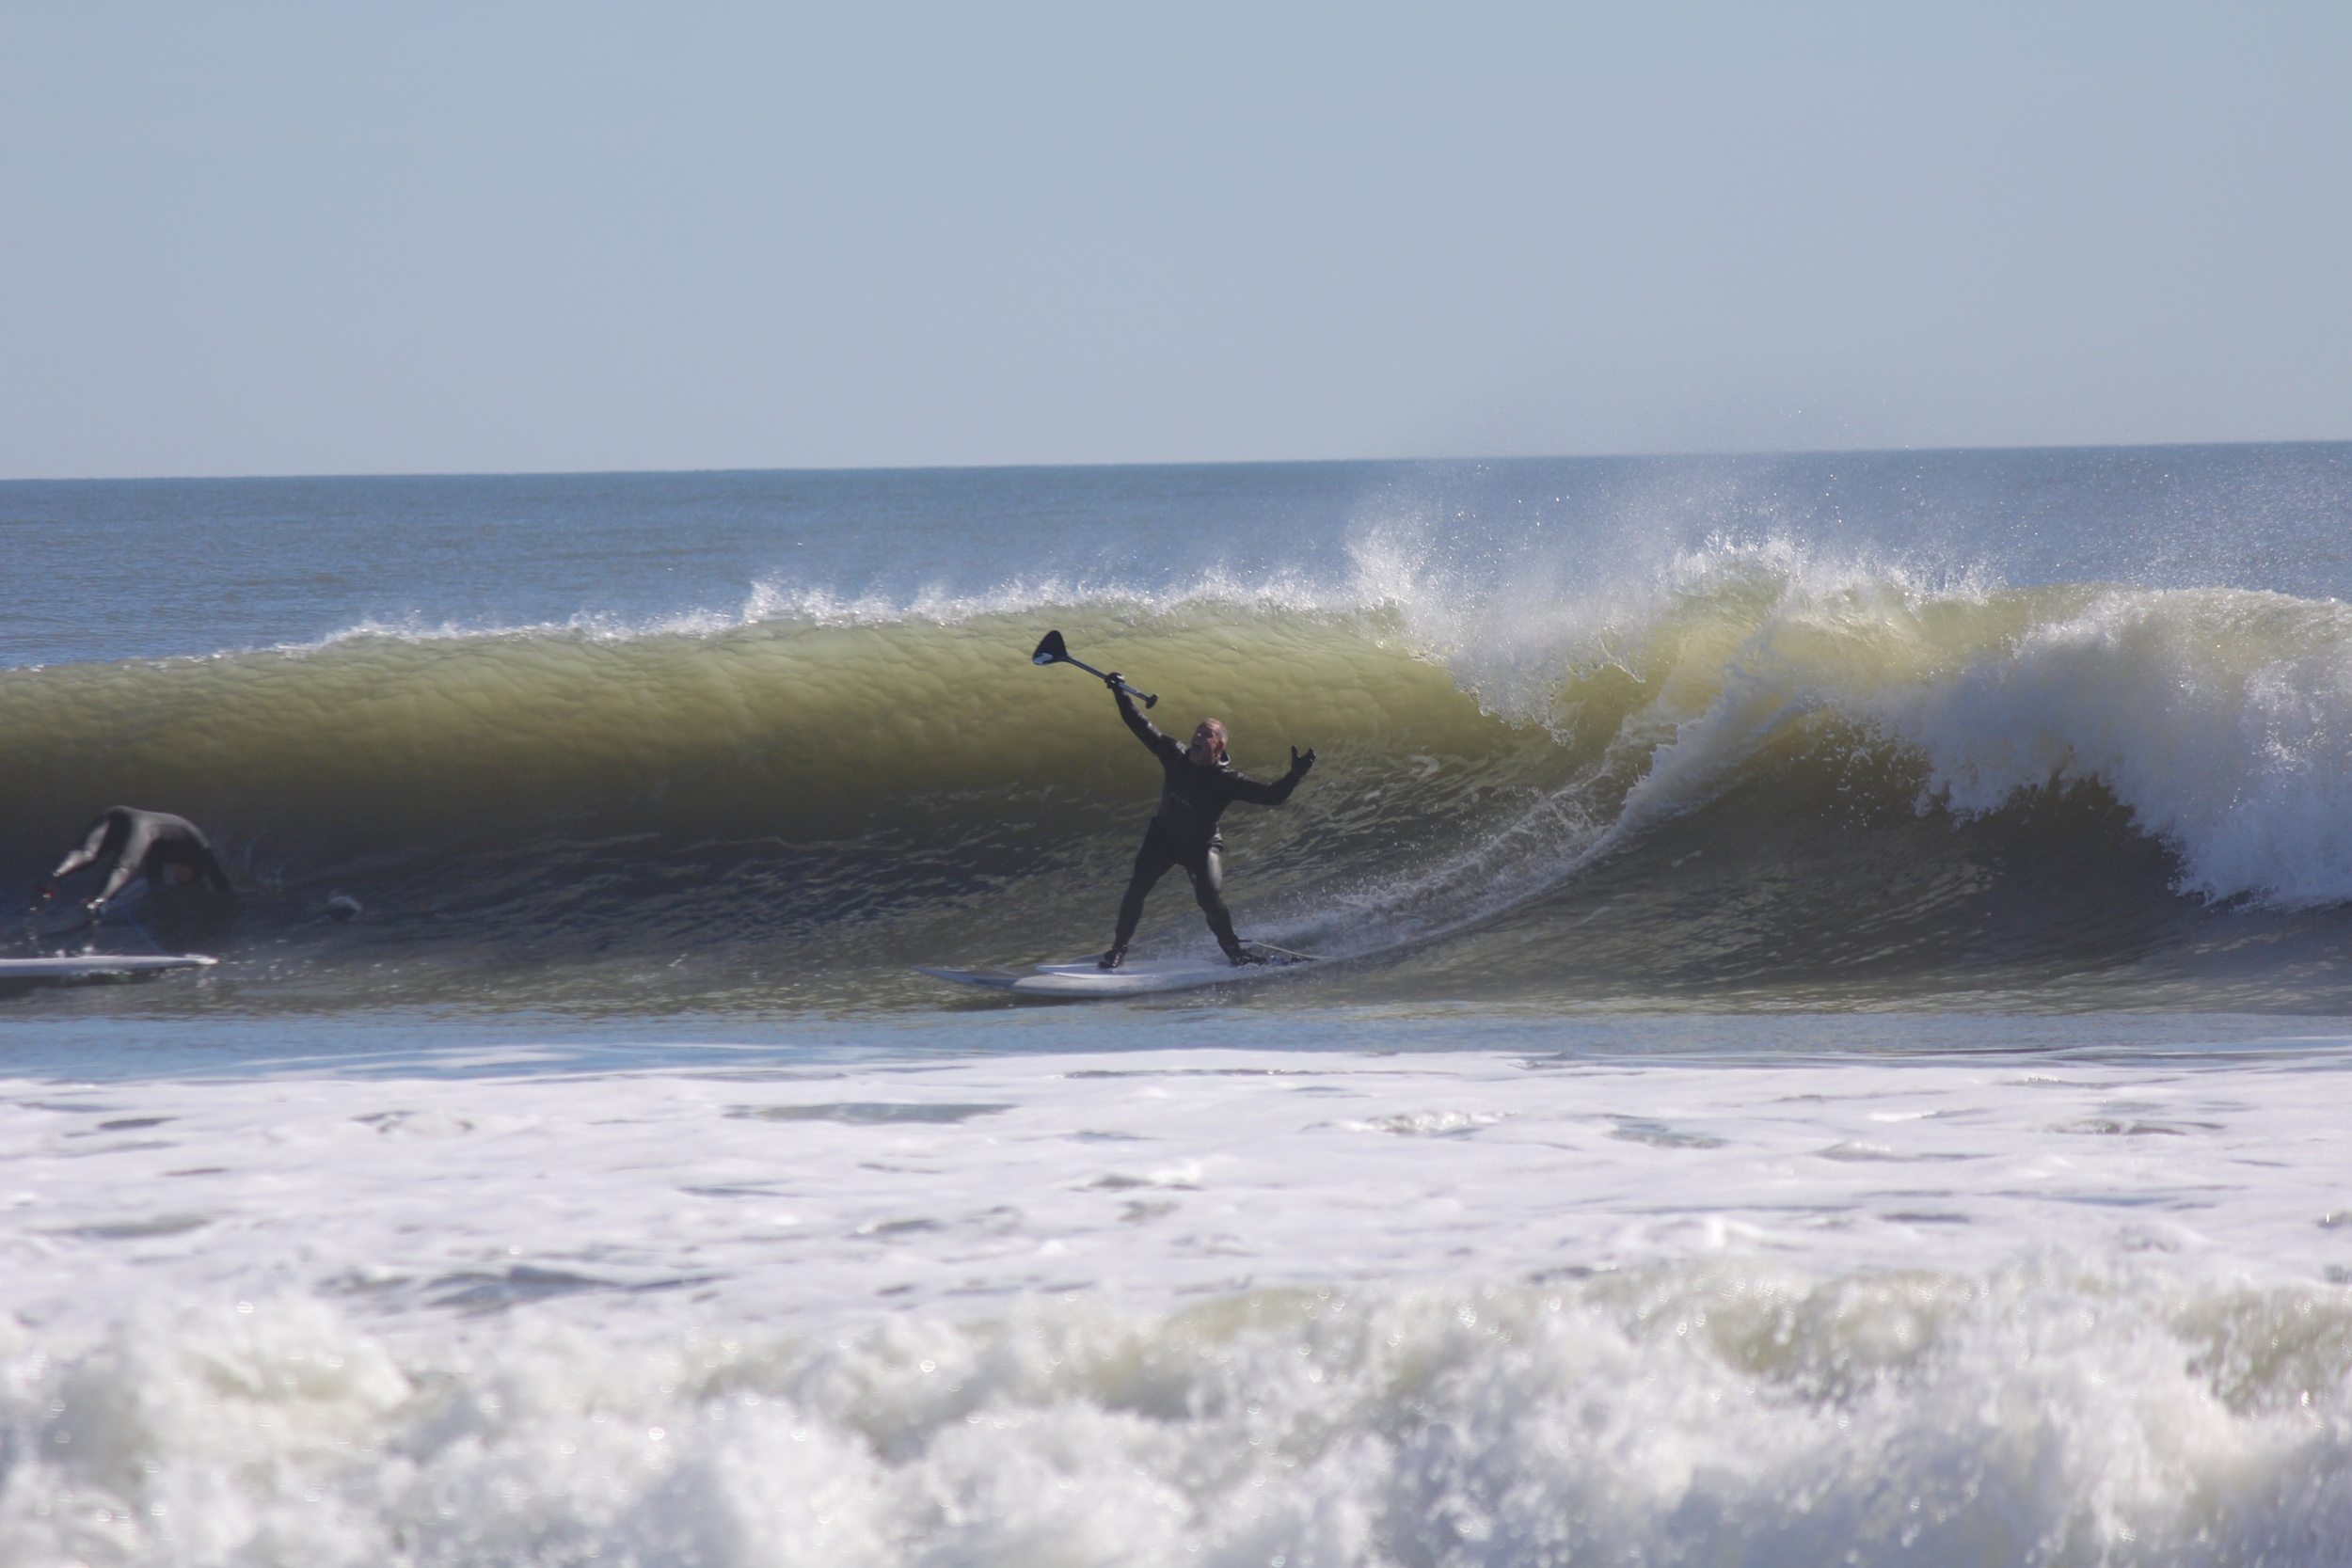 Surf Machine surrenders, while Jacky dives!